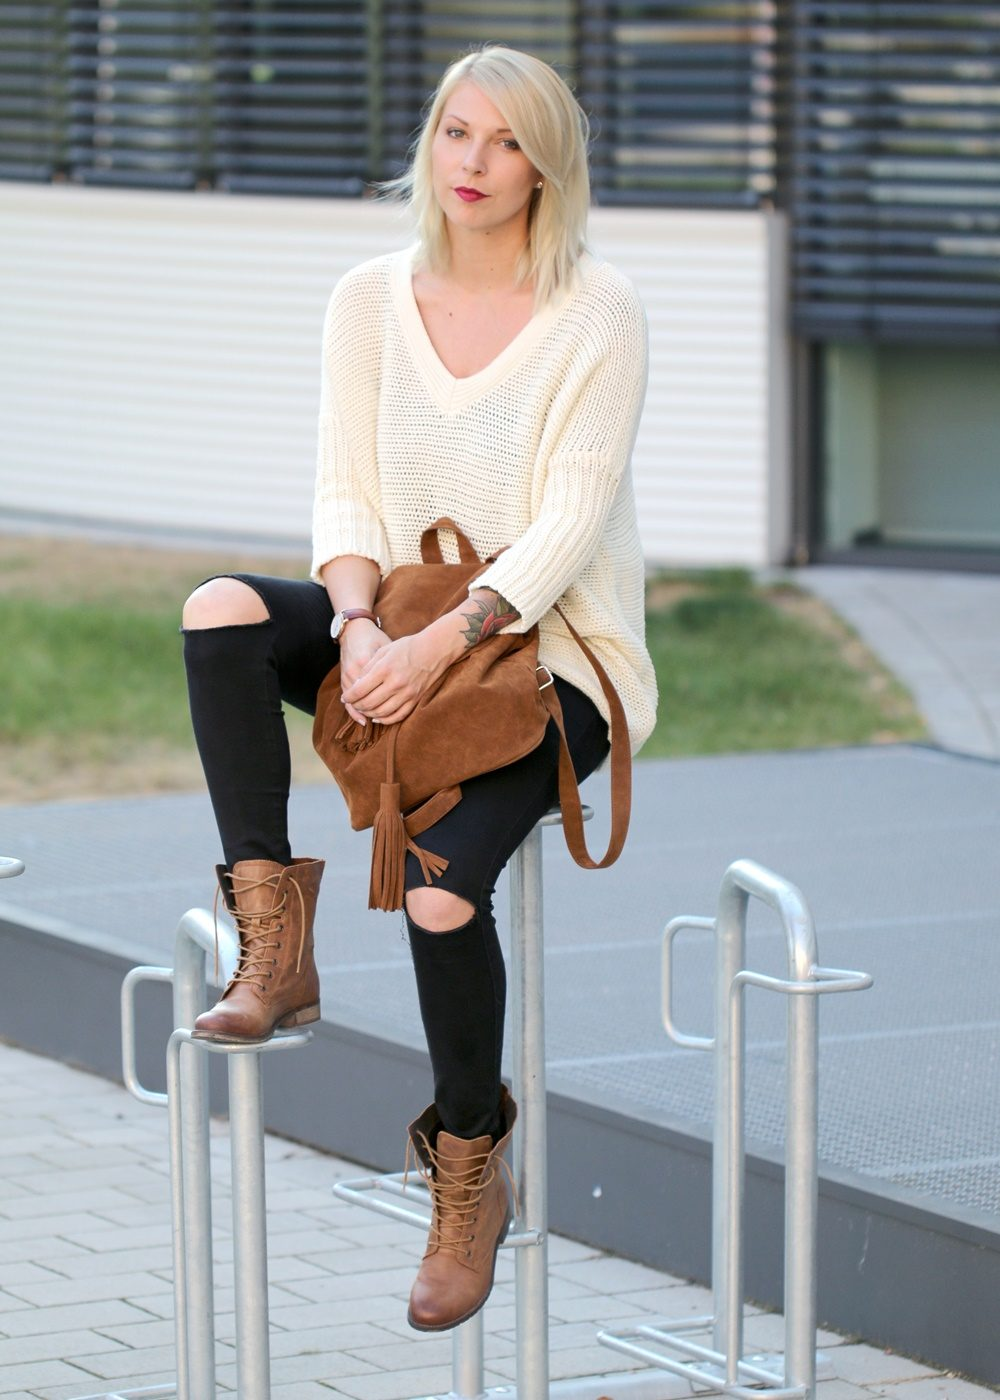 fashionbloggerin-karlsruhe-outfit-braune-schnuerboots-zign-strickpullover-noisy-may-fransenrucksack-just-fab-7